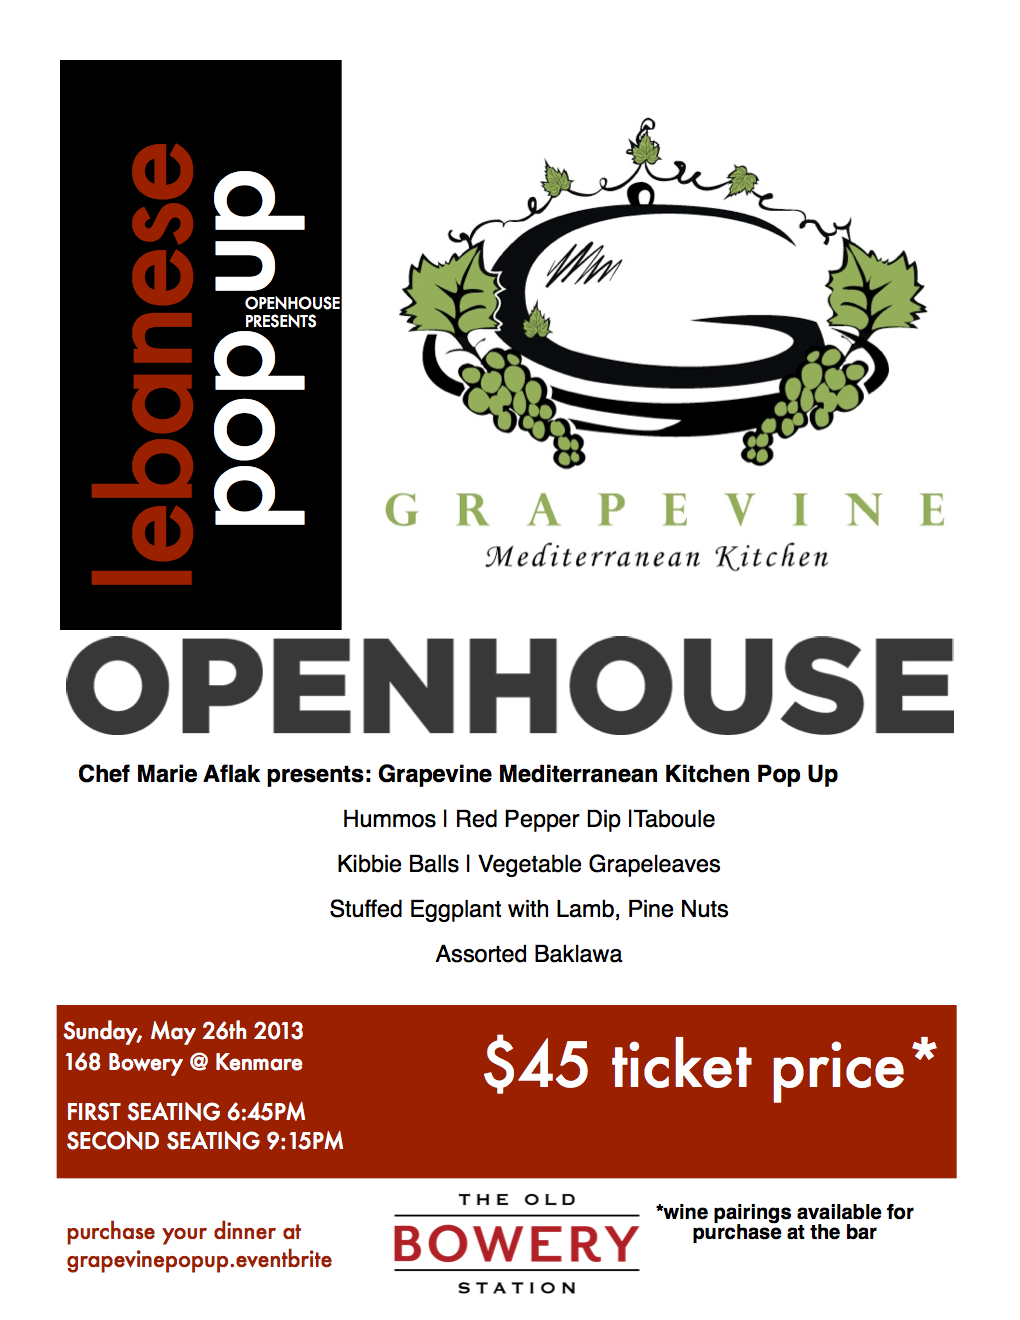 Openhouse The Bowery Station Lebanese Mediterranean Pop Up, Grapevine Bayridge